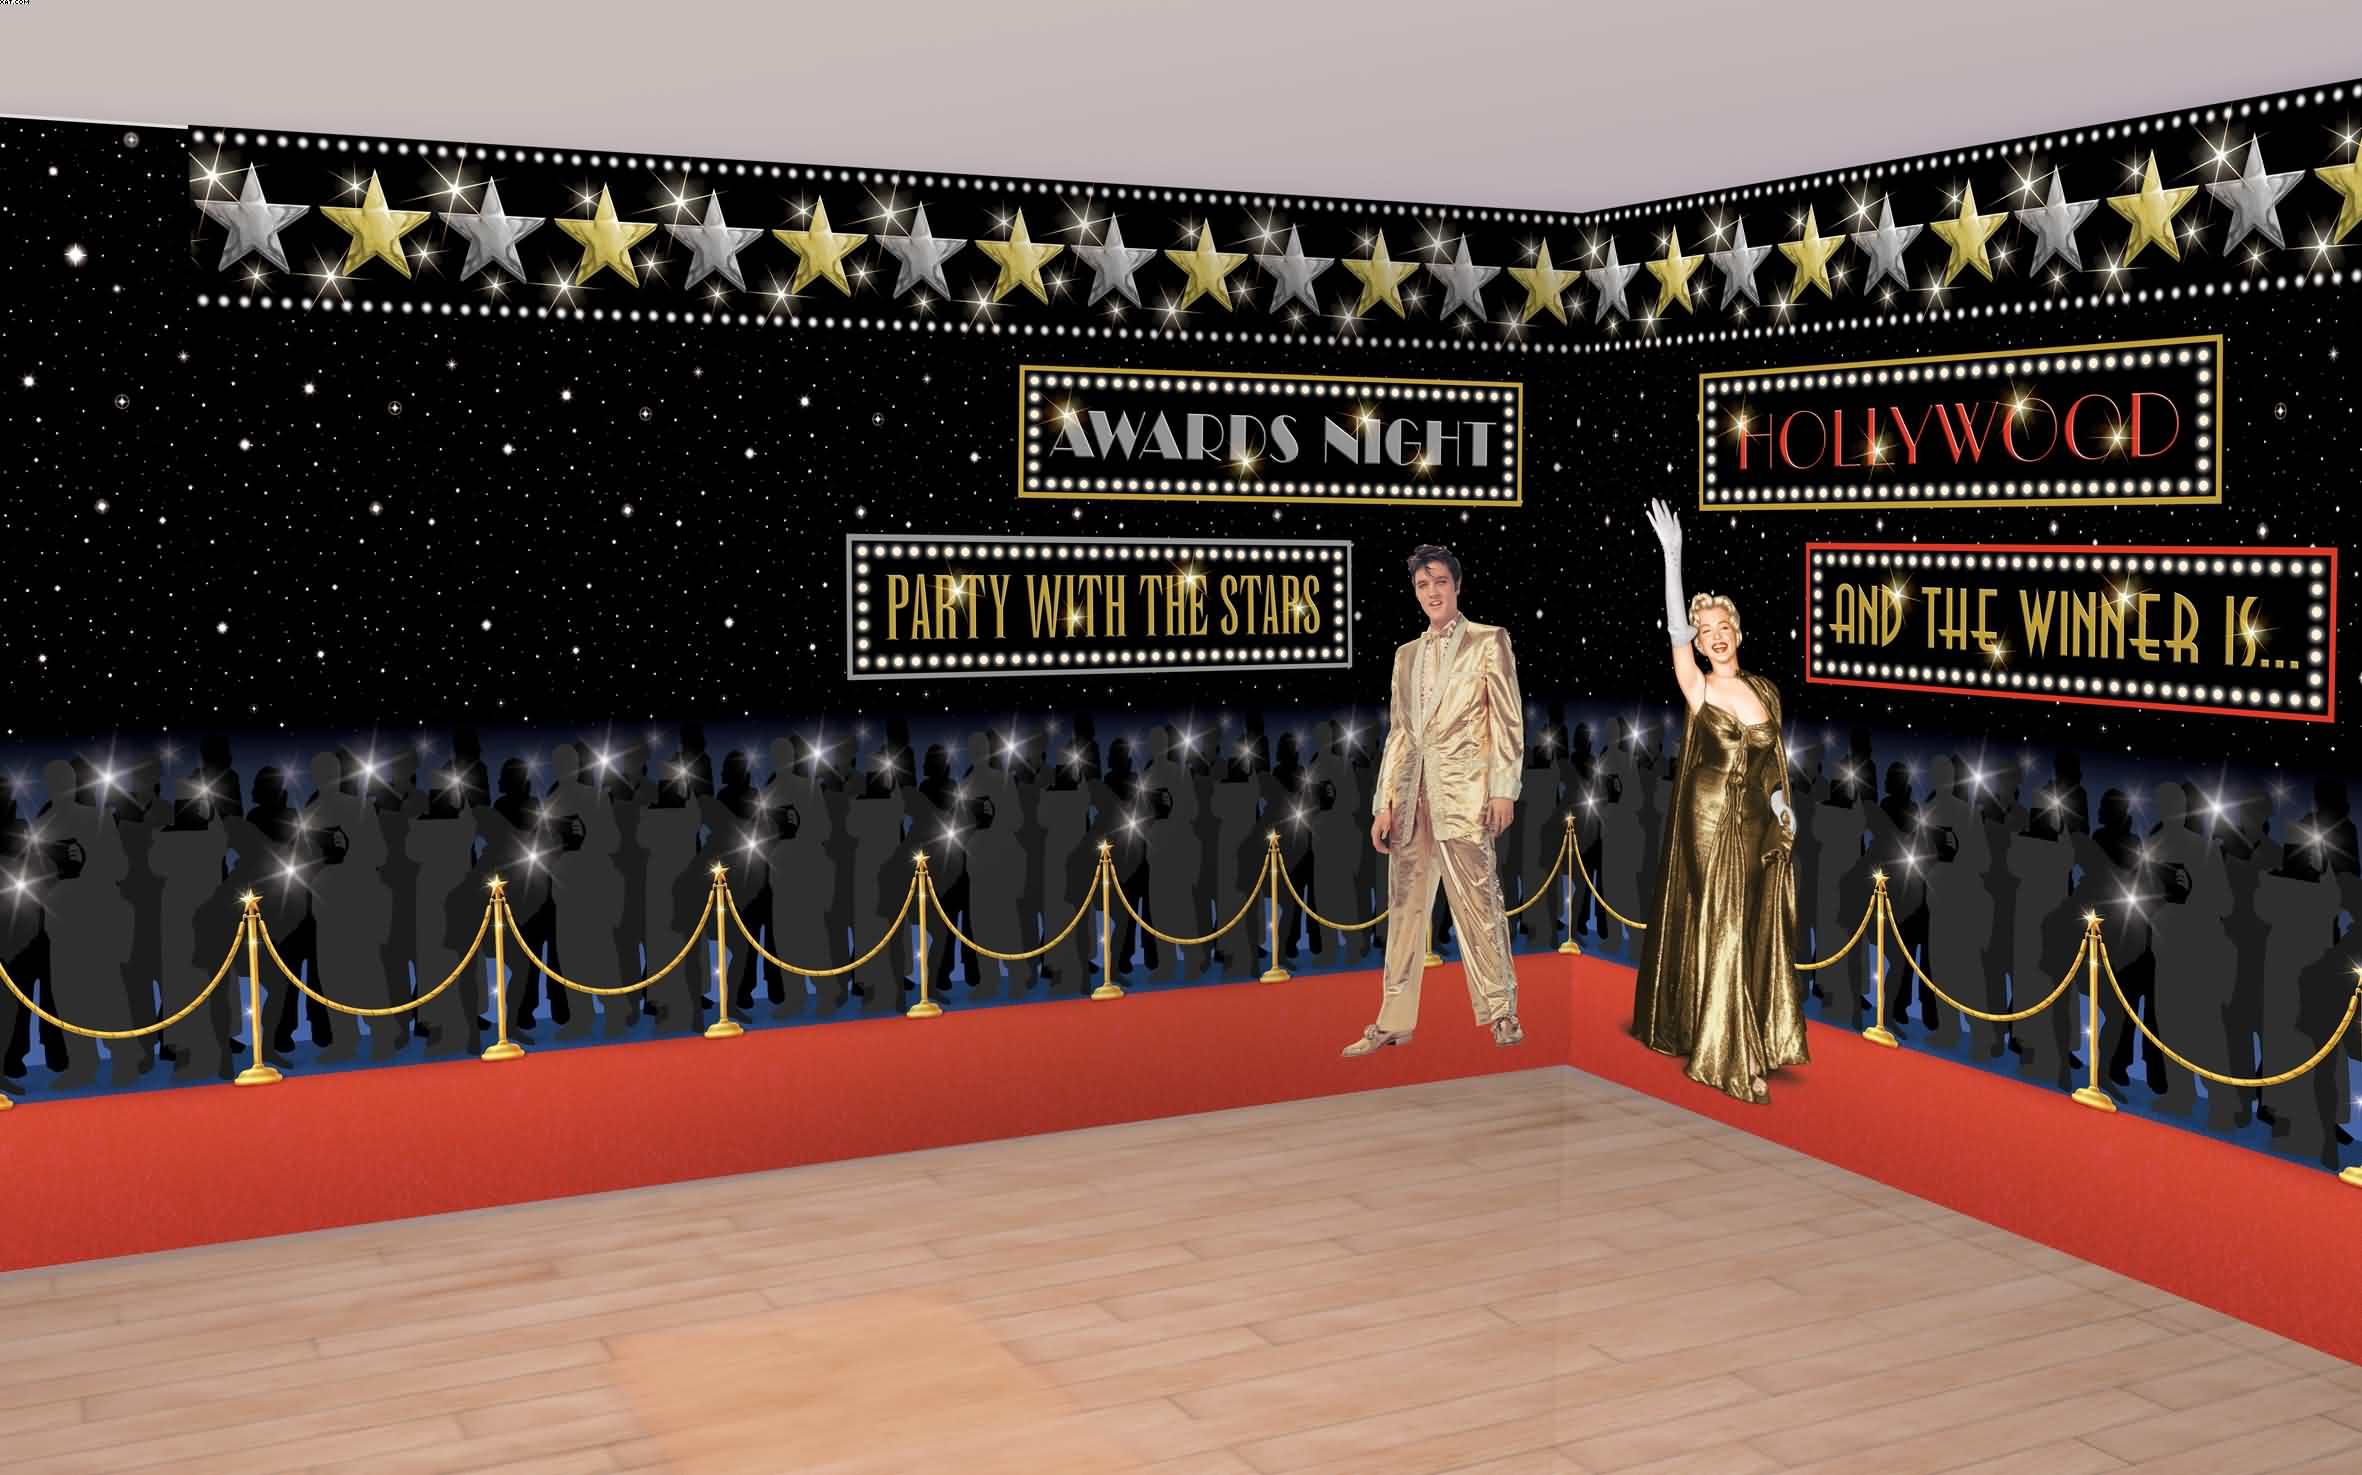 scene setter hollywood google search hollywood decorationshollywood theme partiesparty - Hollywood Party Decorations